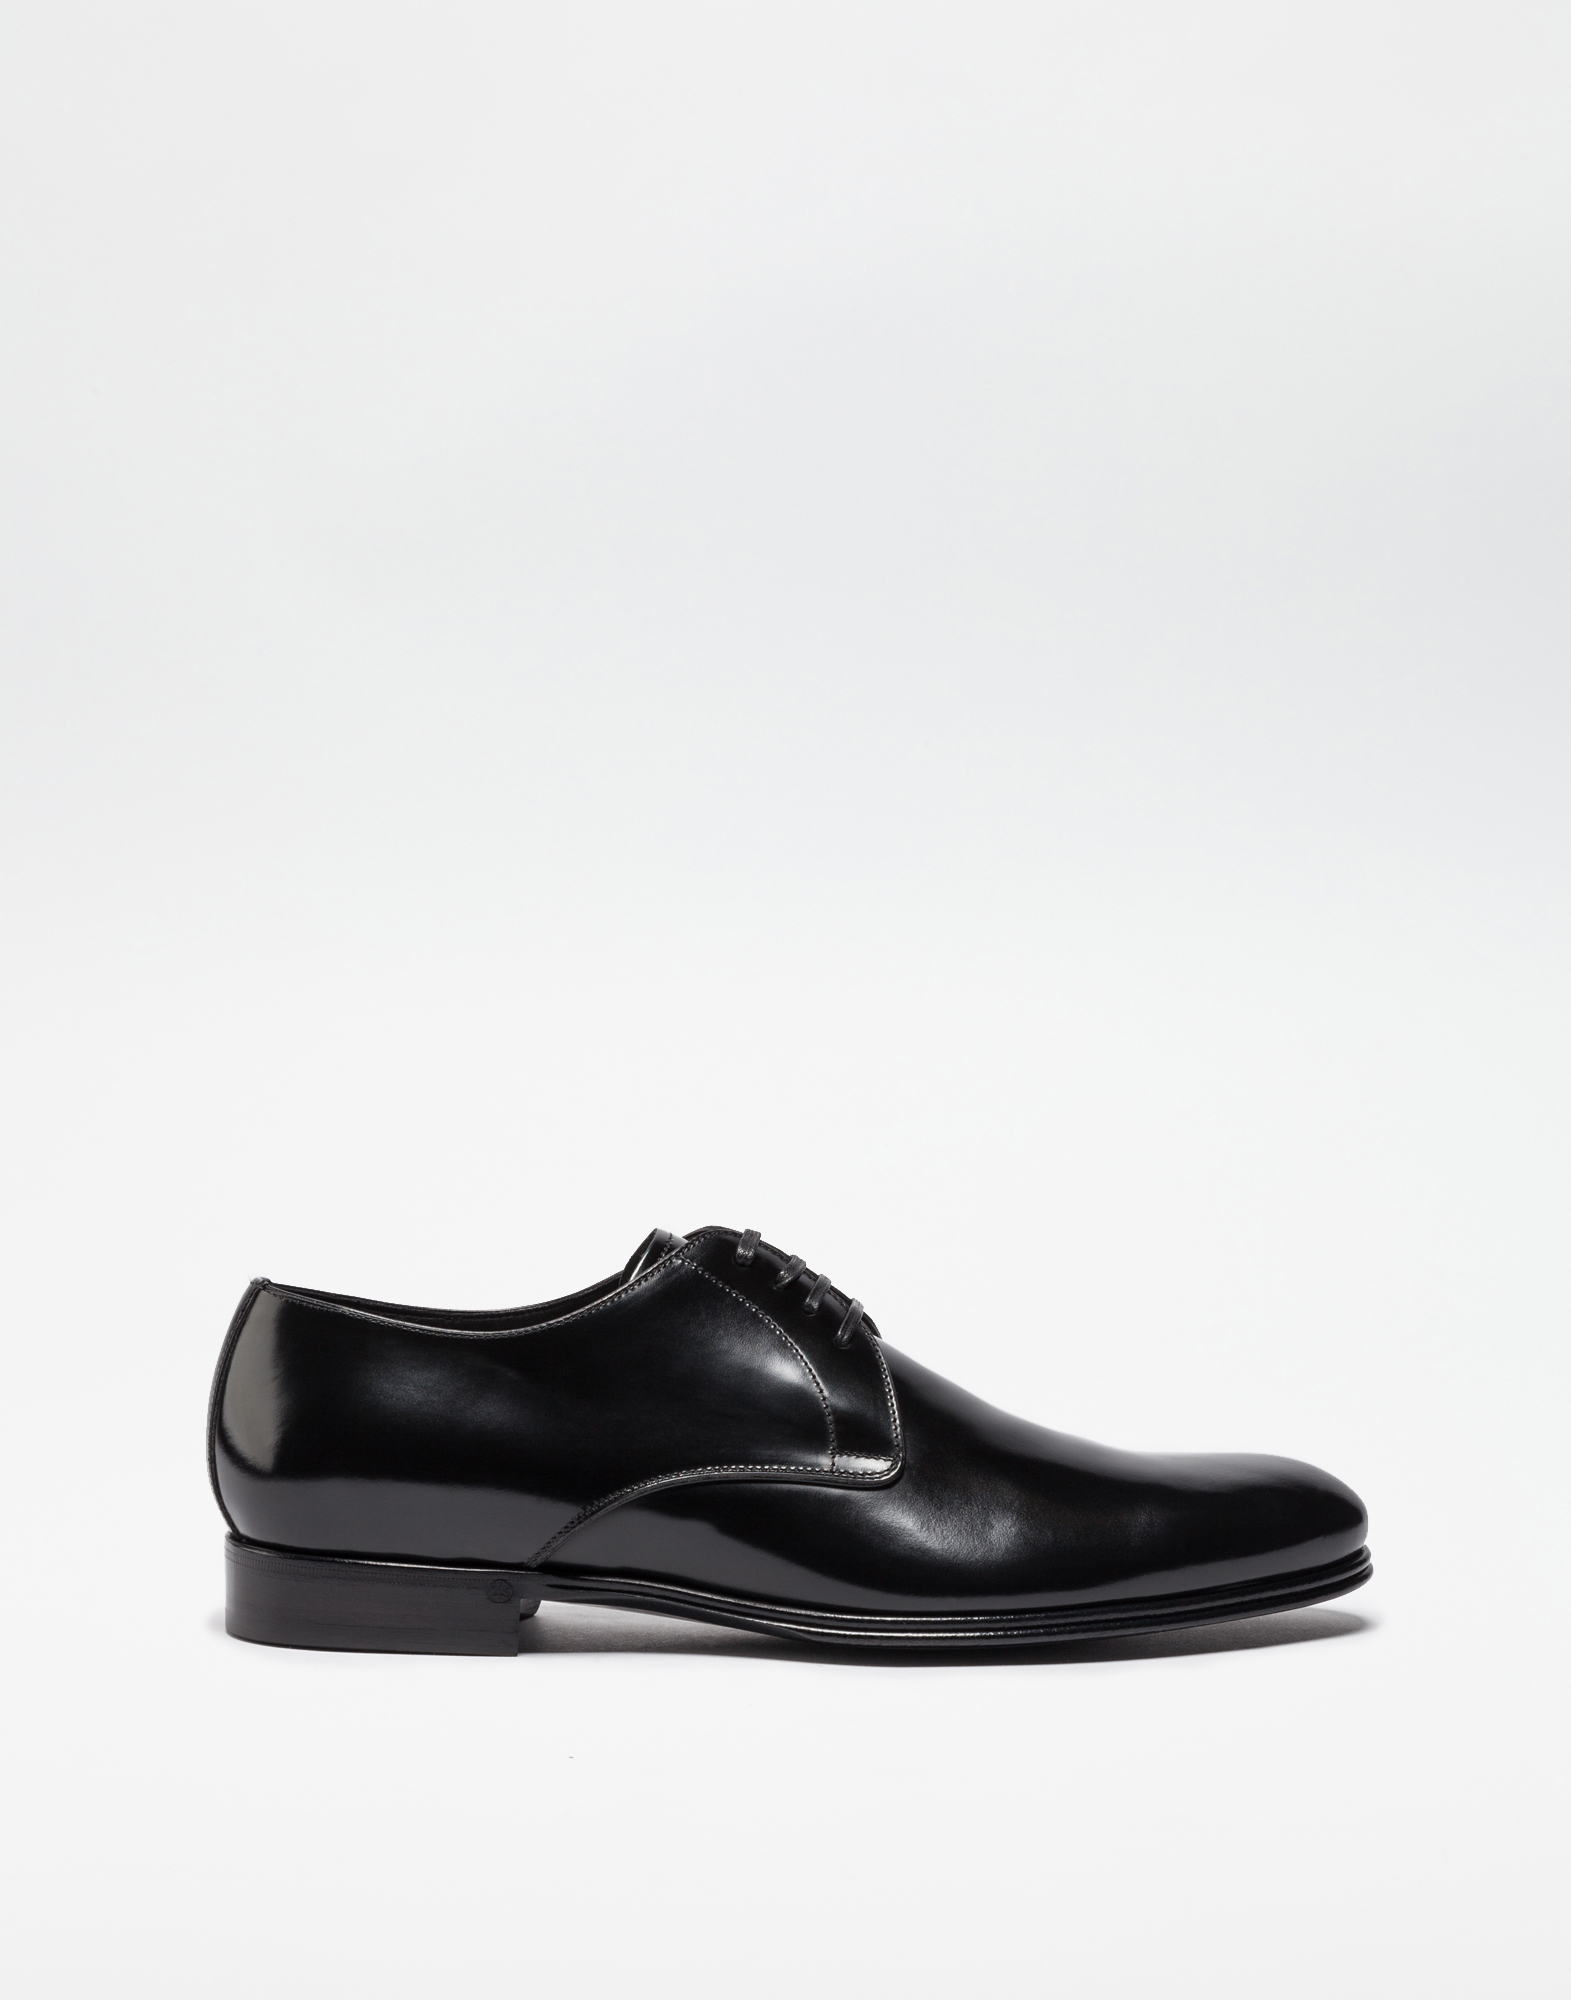 BRUSHED LEATHER DERBY SHOES